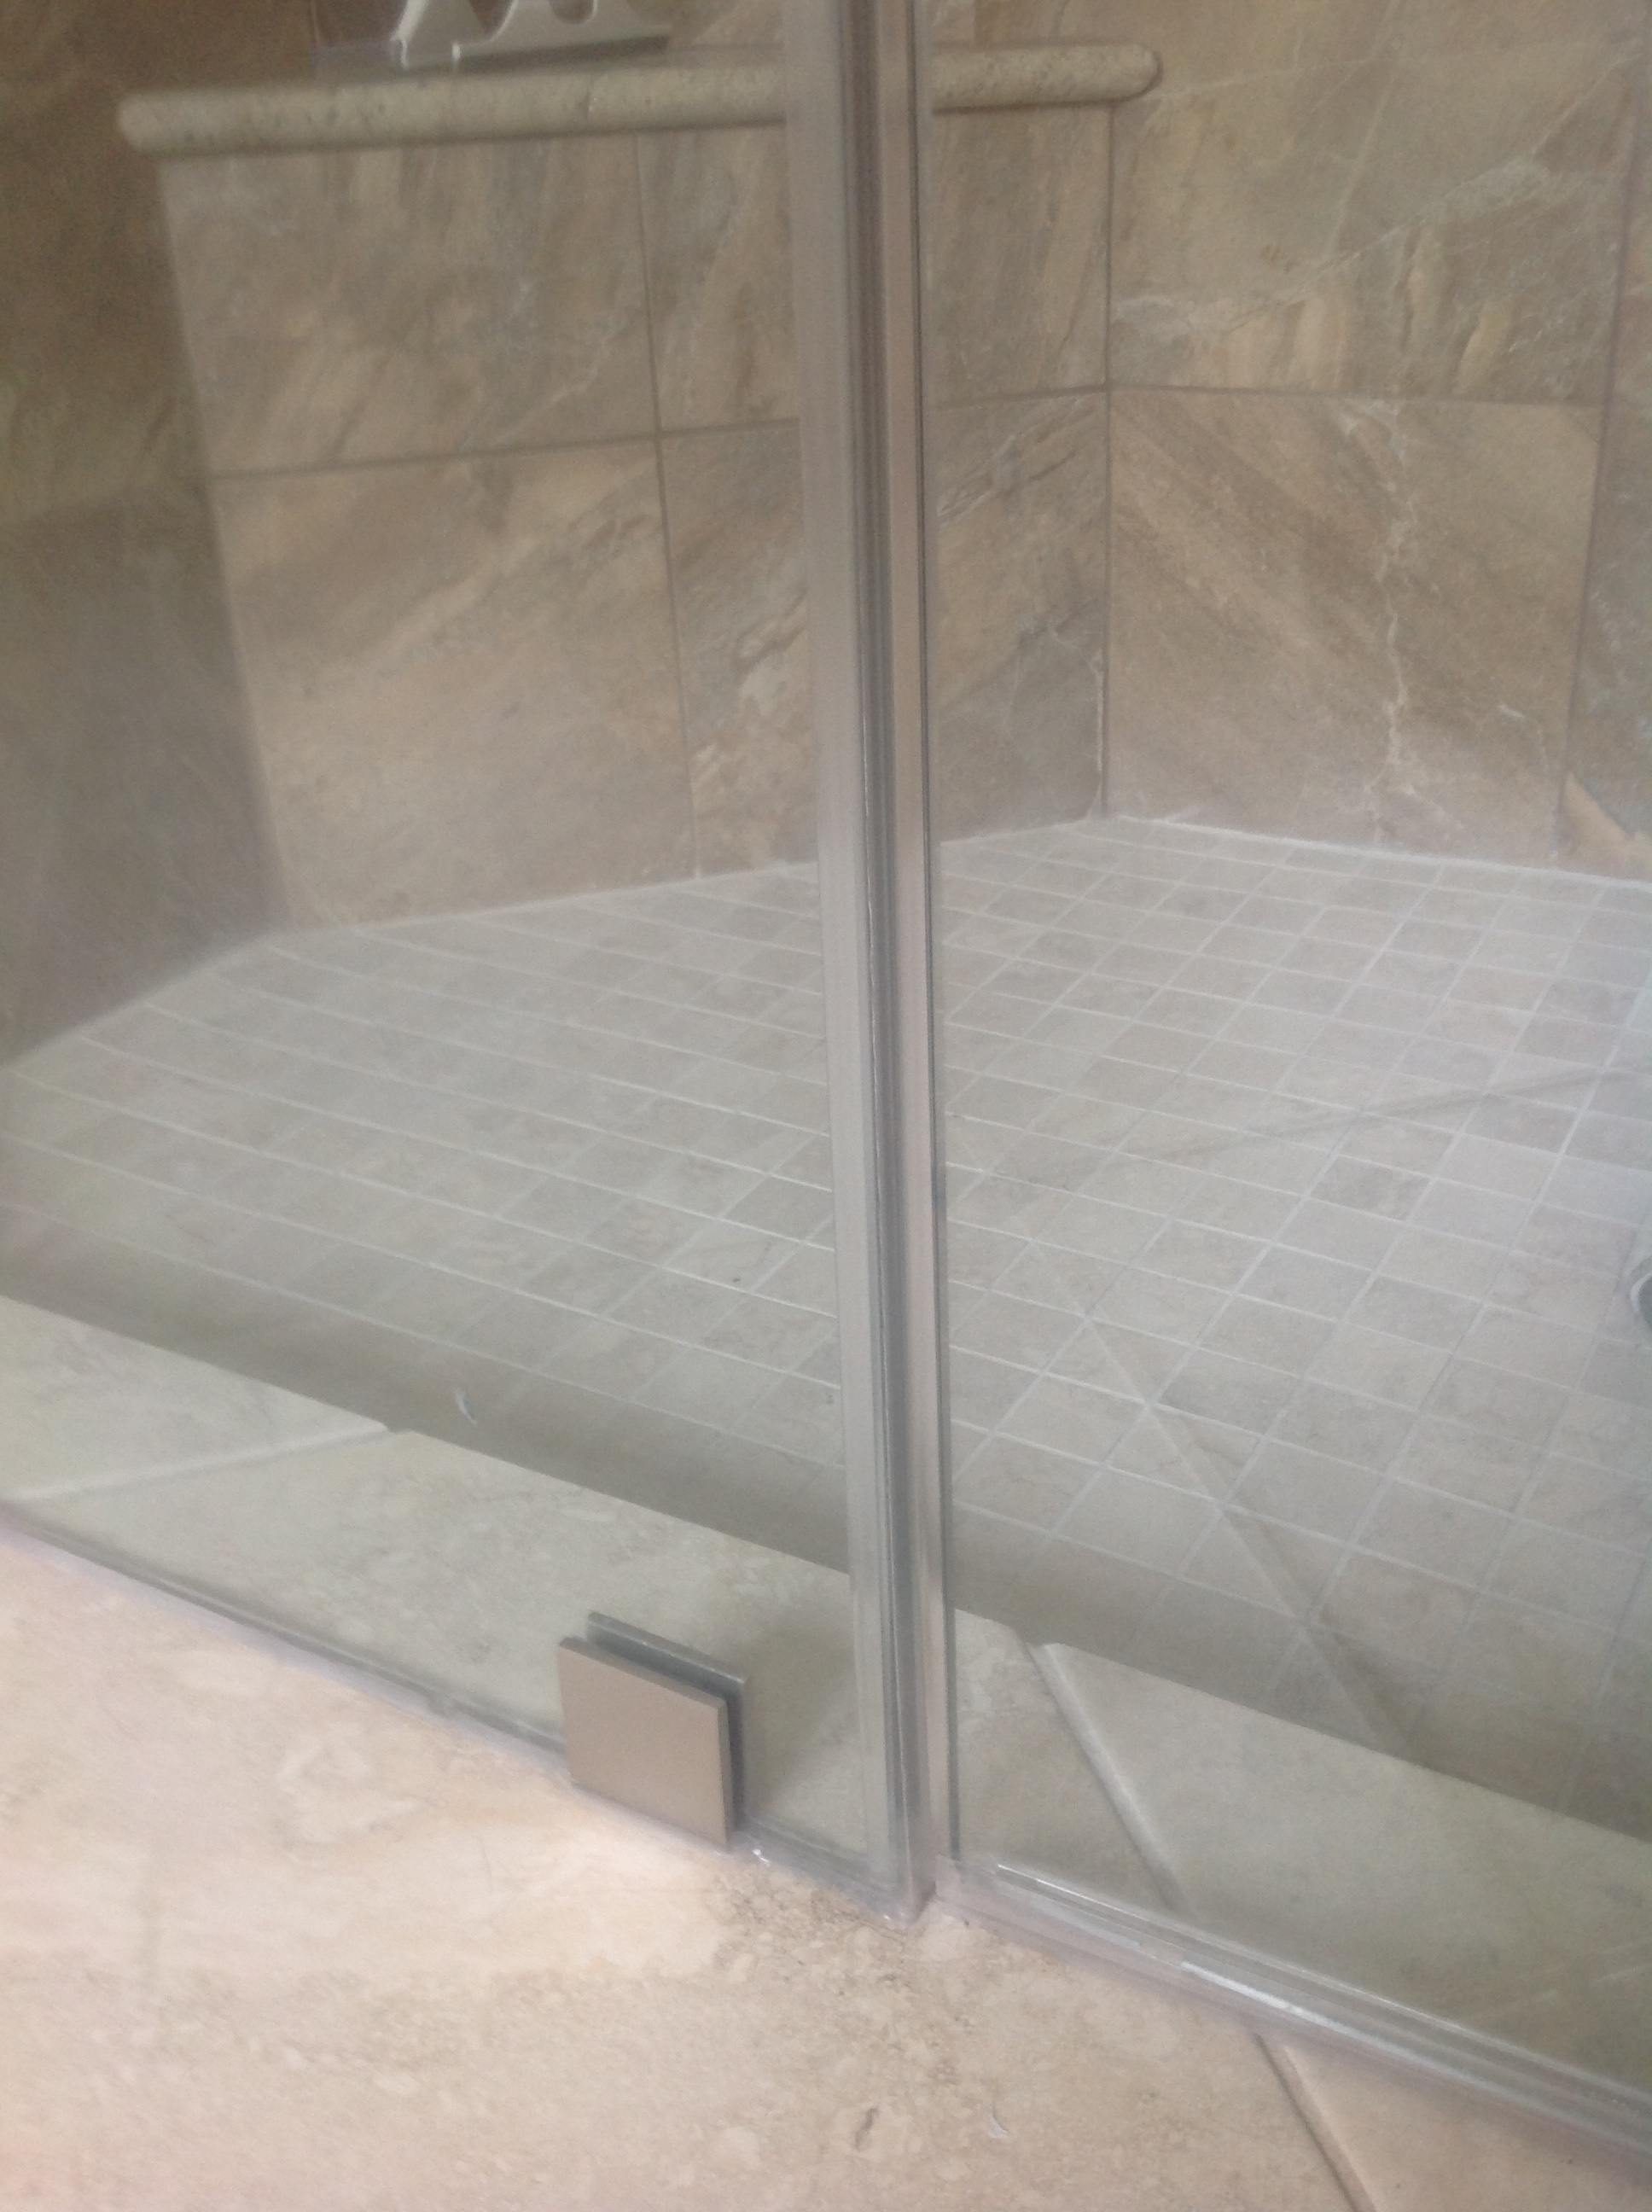 Caulking Frameless Shower Door